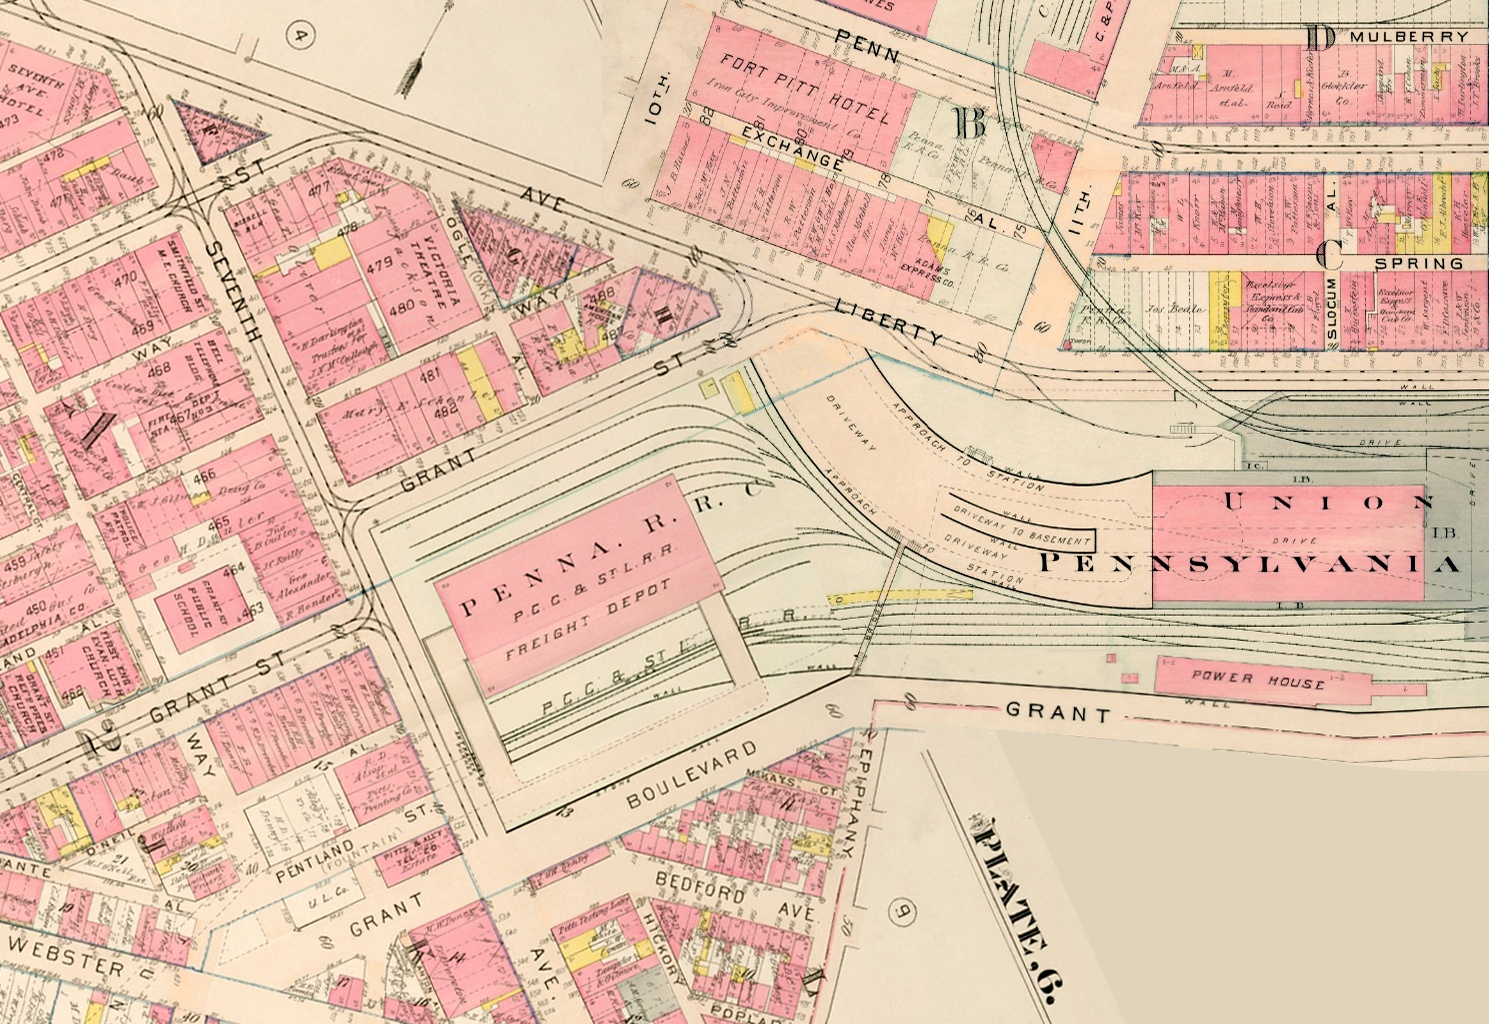 This 1914 map shows how Grant Street (lower left) was rerouted in the 1880s east of Seventh Avenue so that the Pennsylvania Railroad freight depot could be built adjacent to the passenger station.